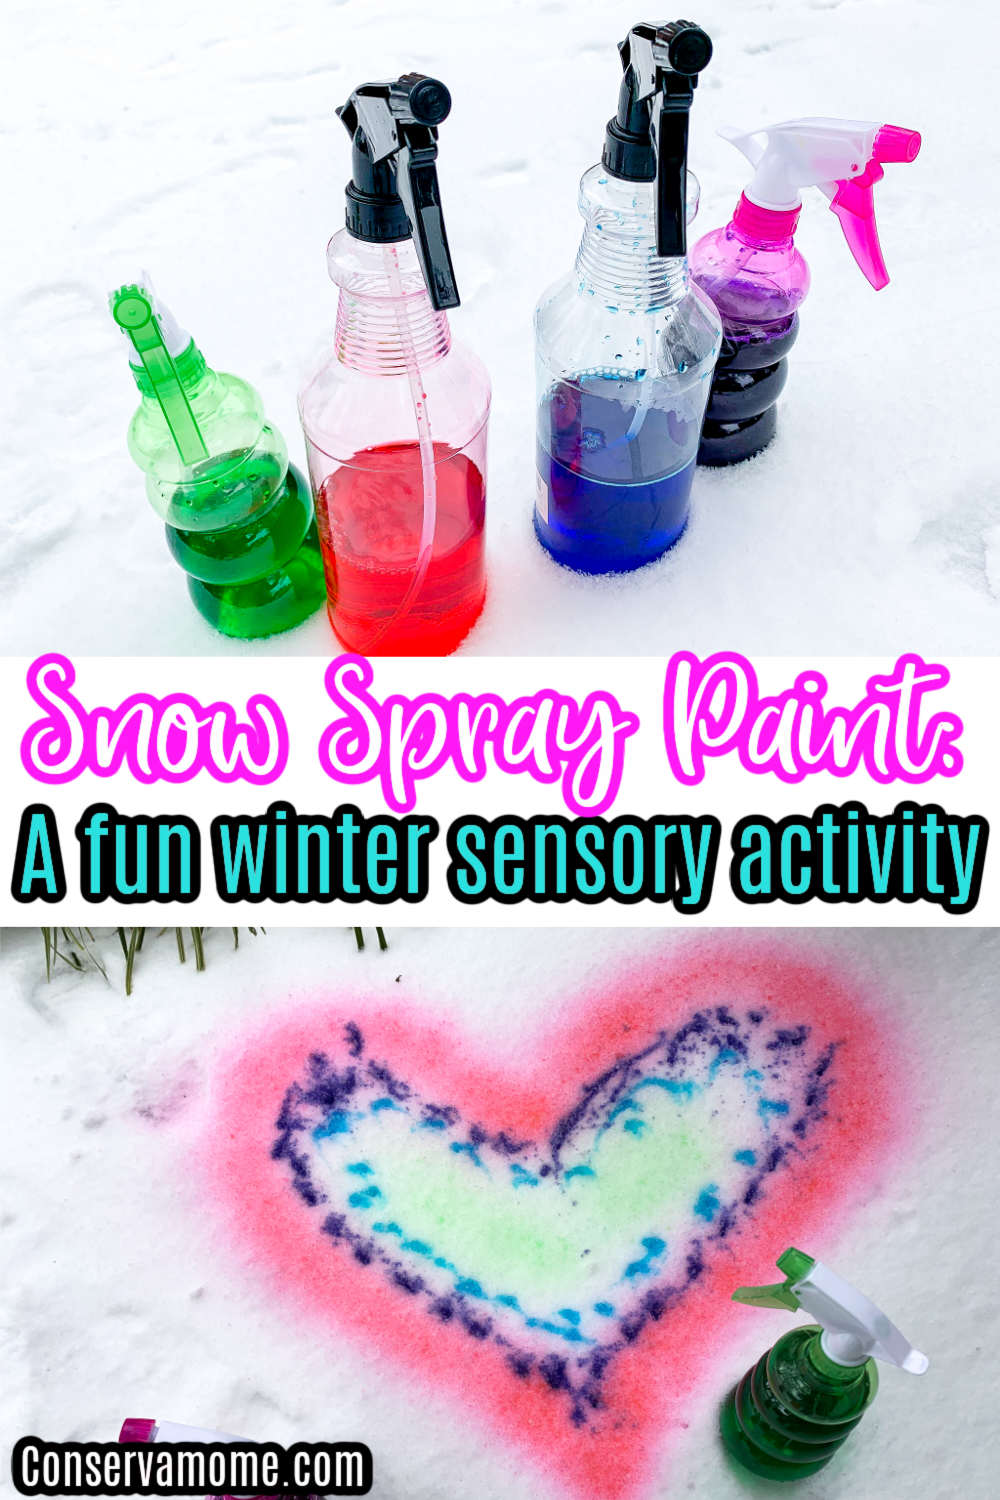 Snow spray paint: A Fun winter sensory activity